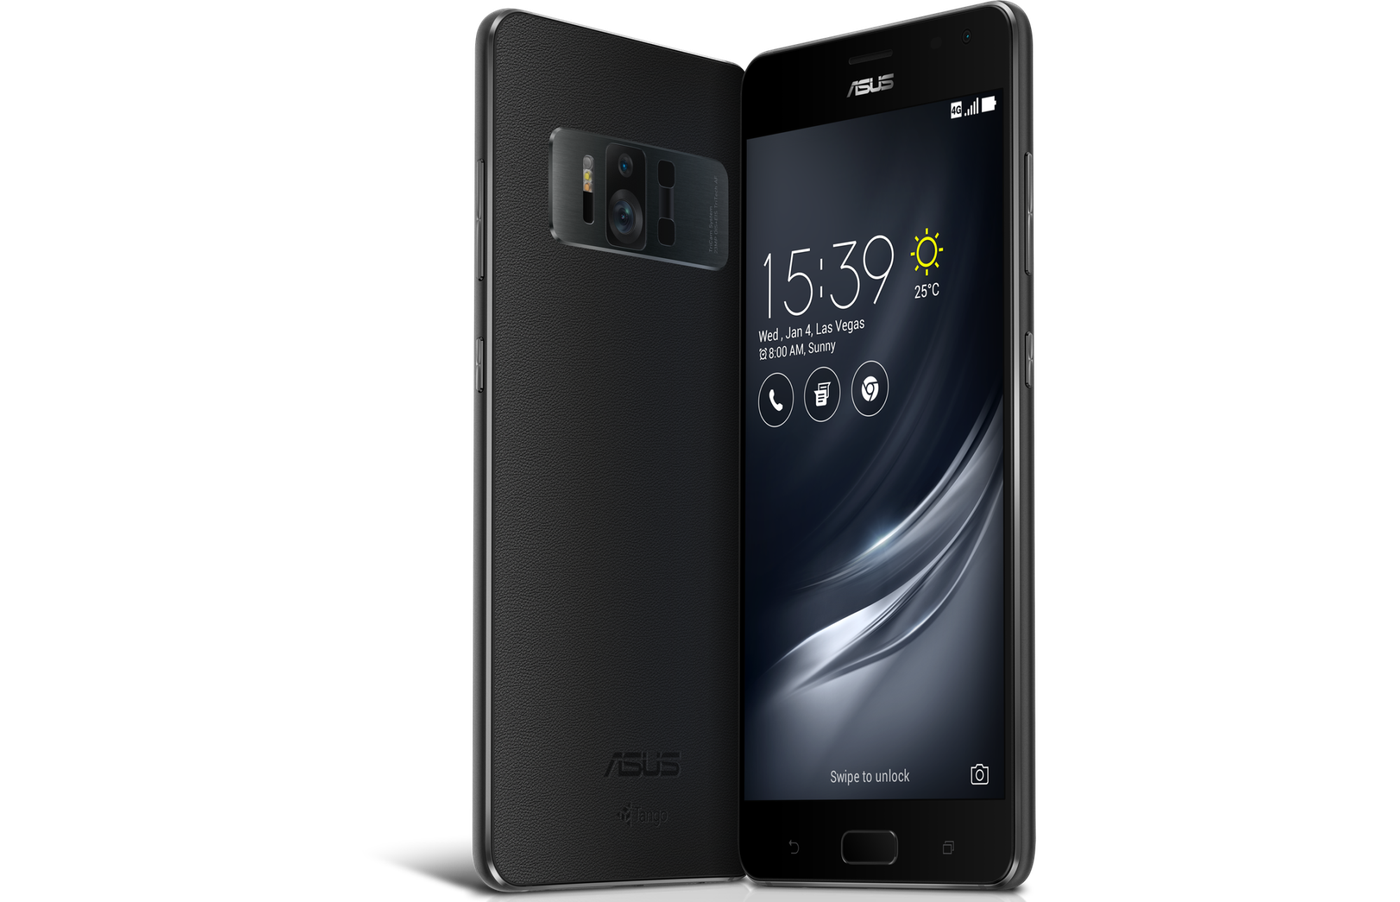 Asus' ZenFone AR has Google's augmented and virtual reality baked in